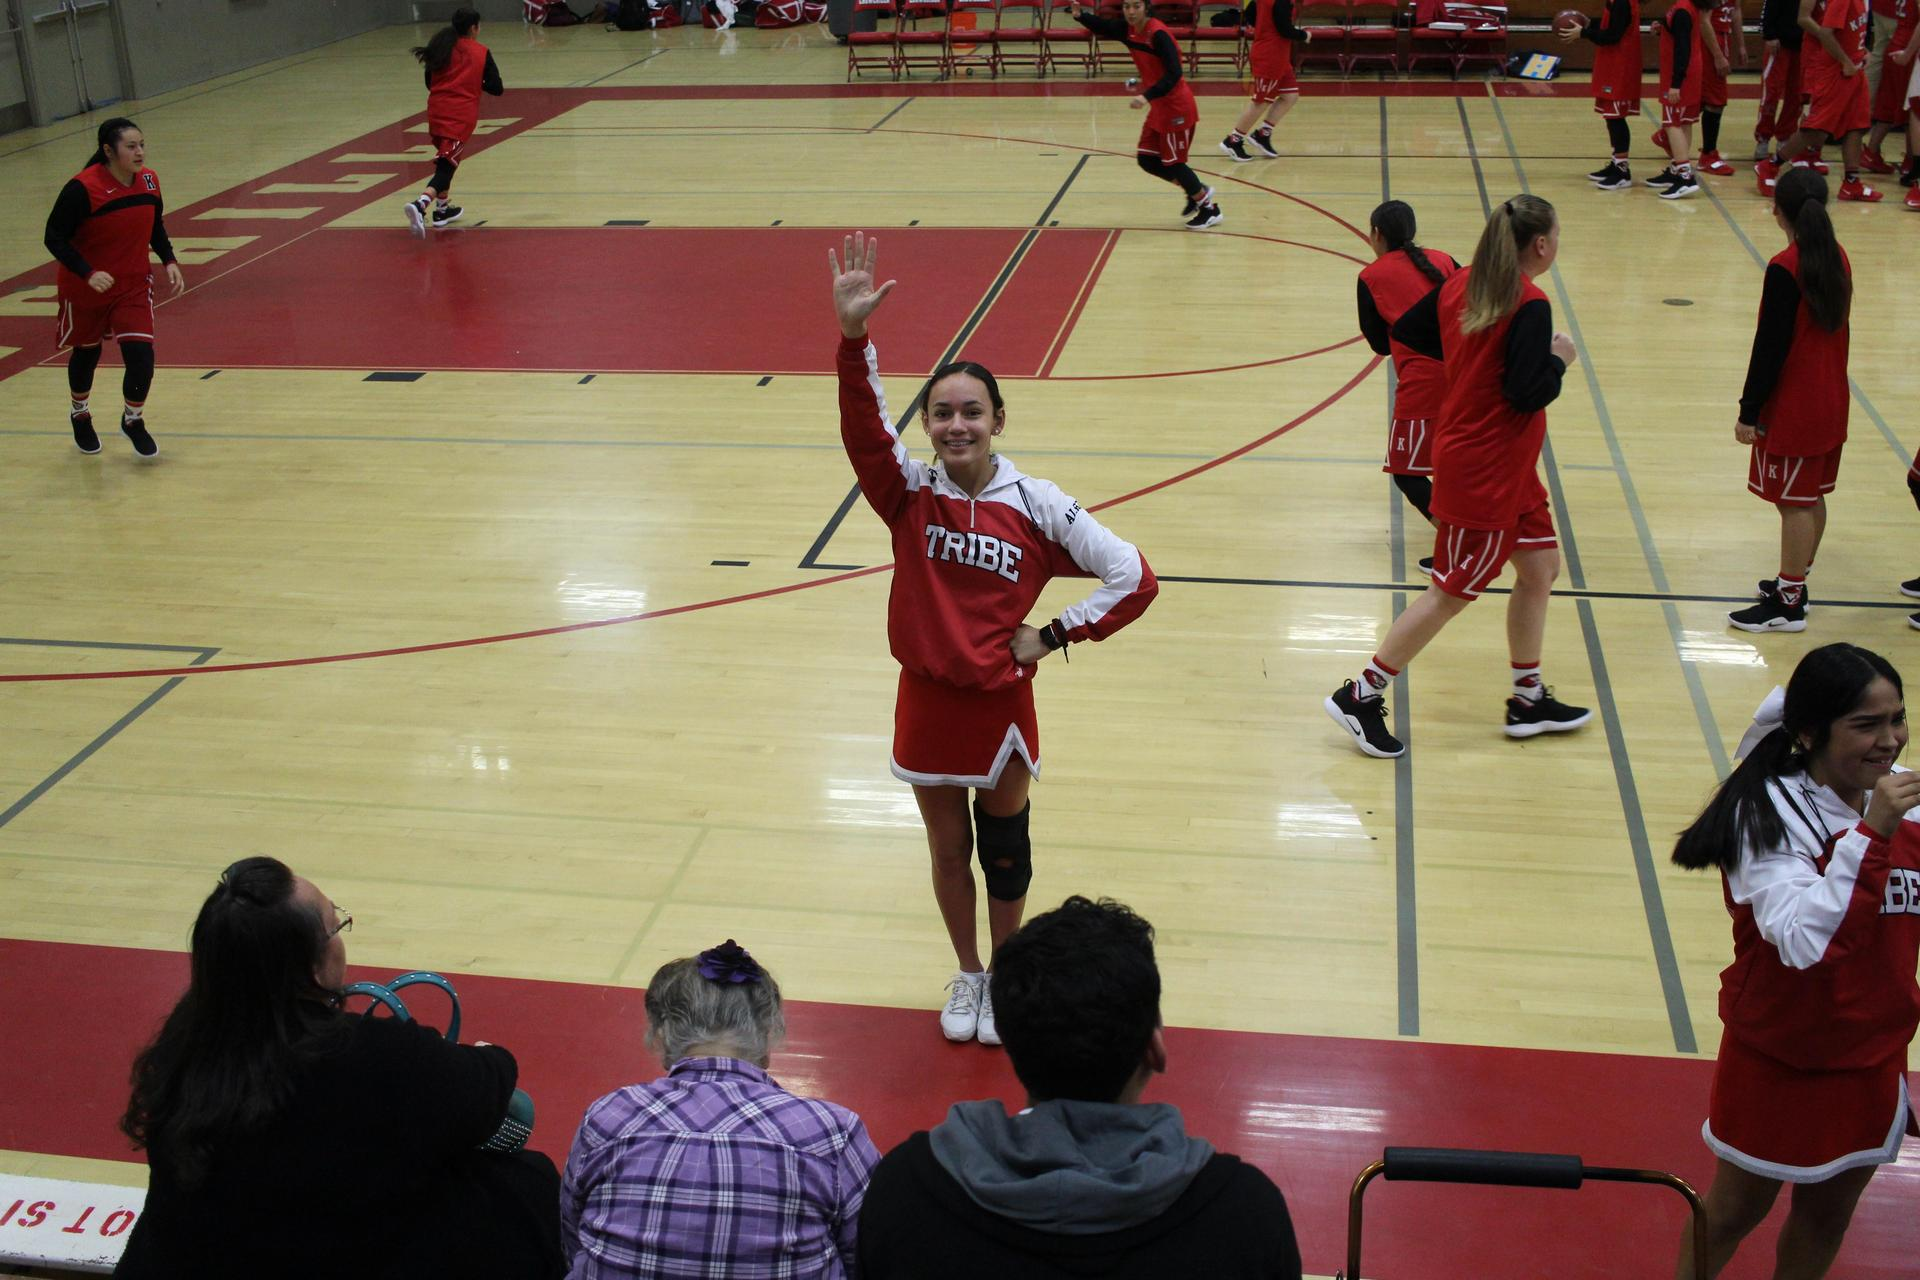 Athletes at Basketball Game vs Kerman